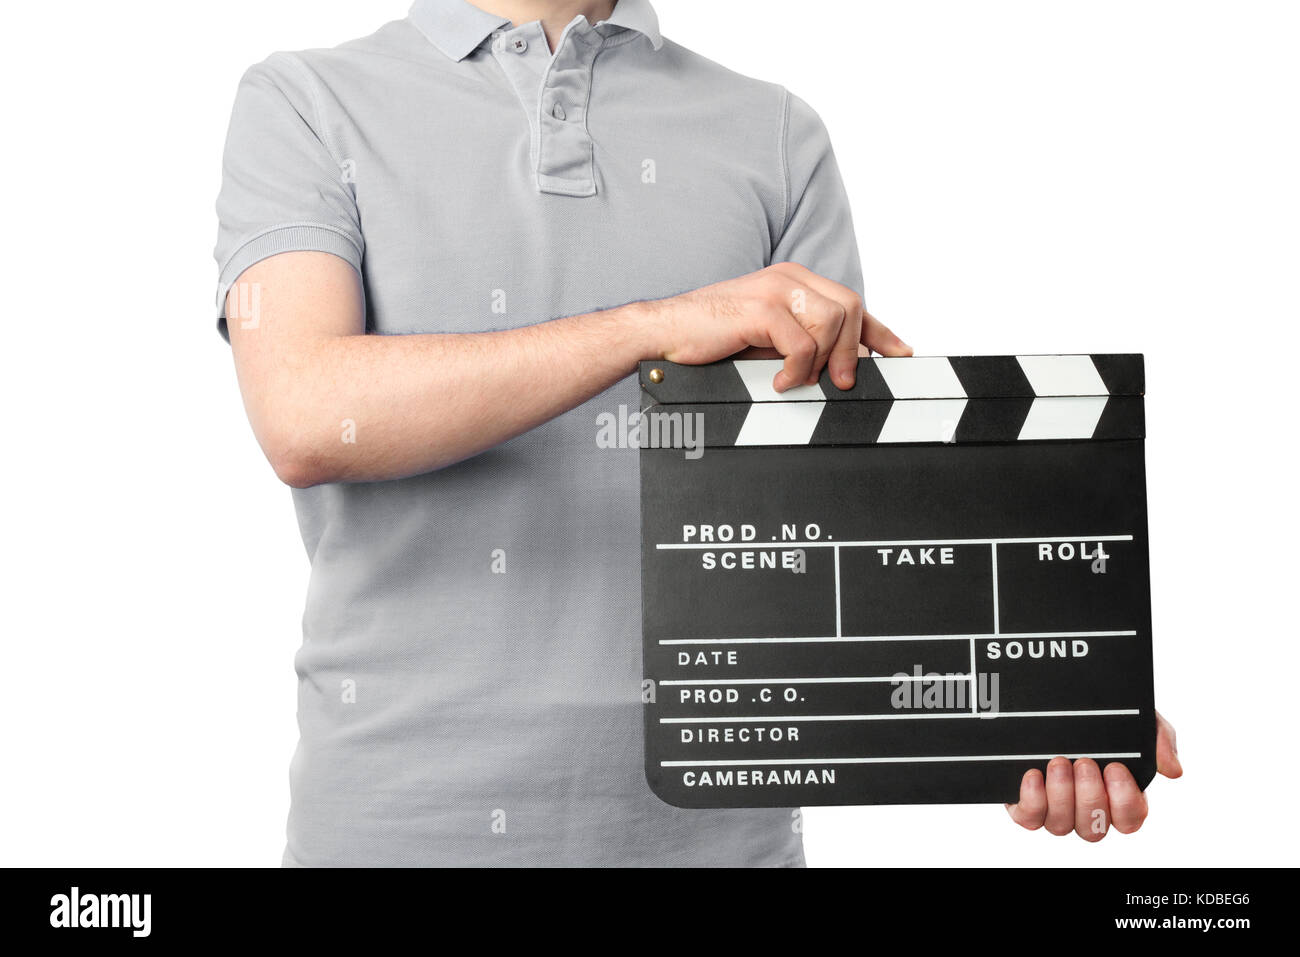 Man holding clapper board in hands - Stock Image